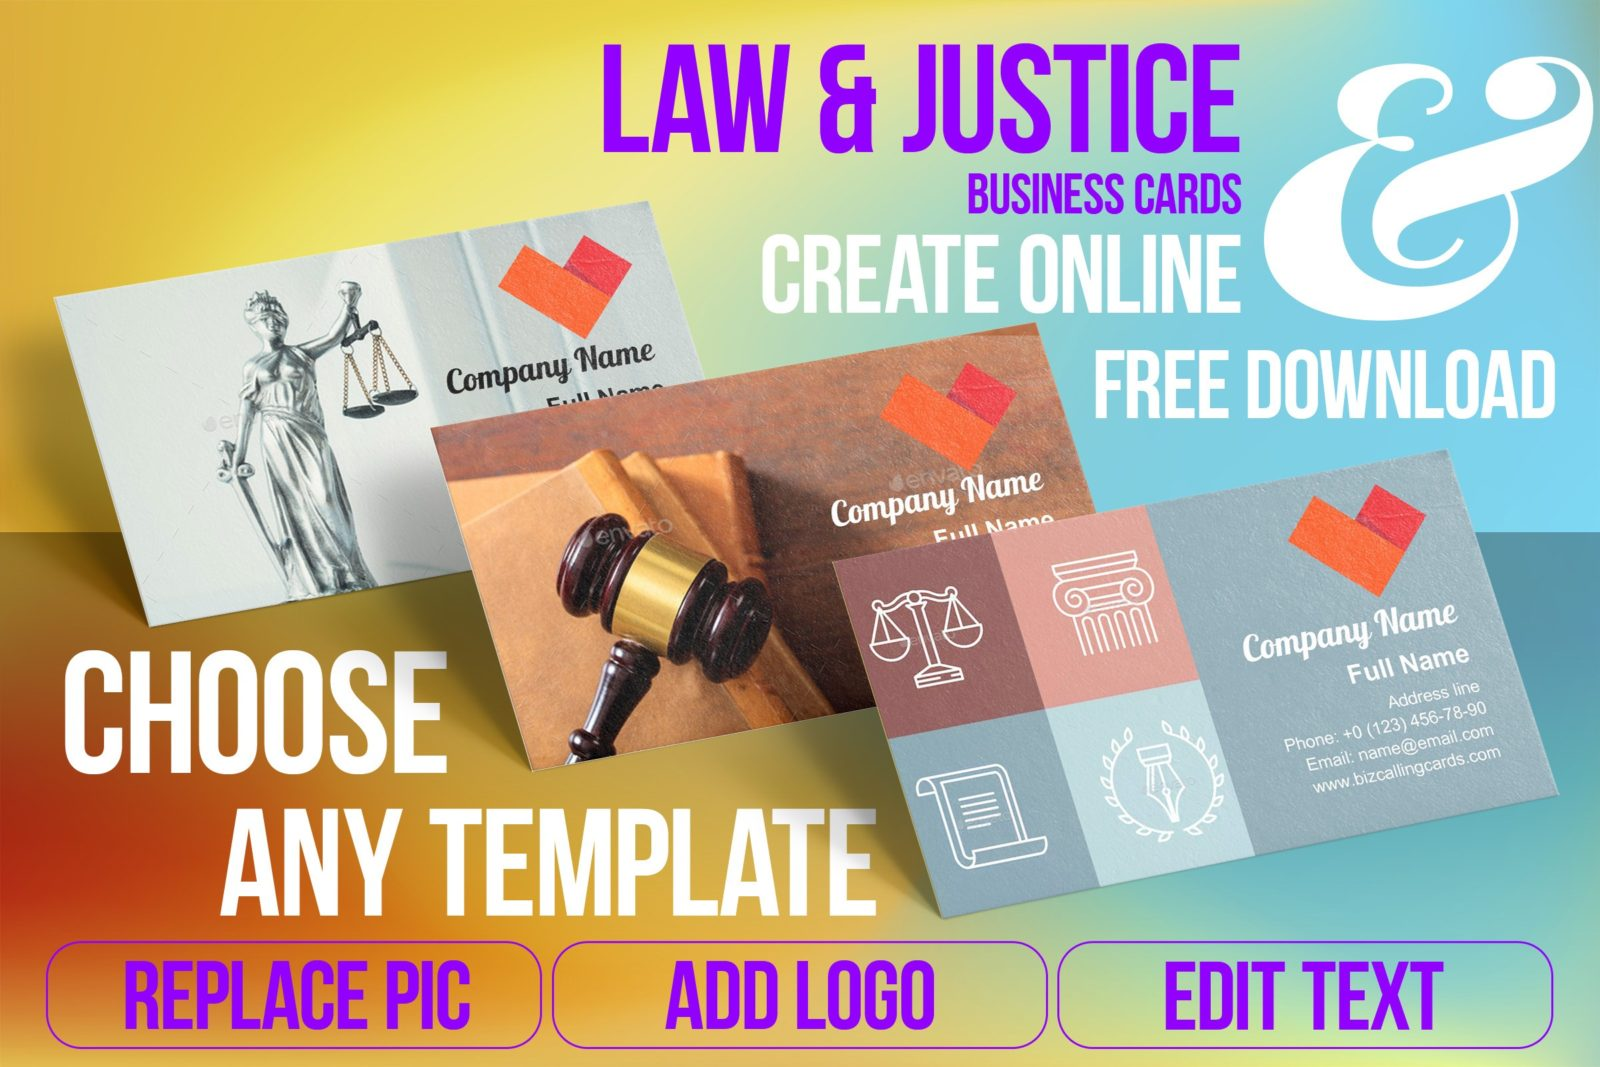 Business Card Templates For Law & Justice Free Download